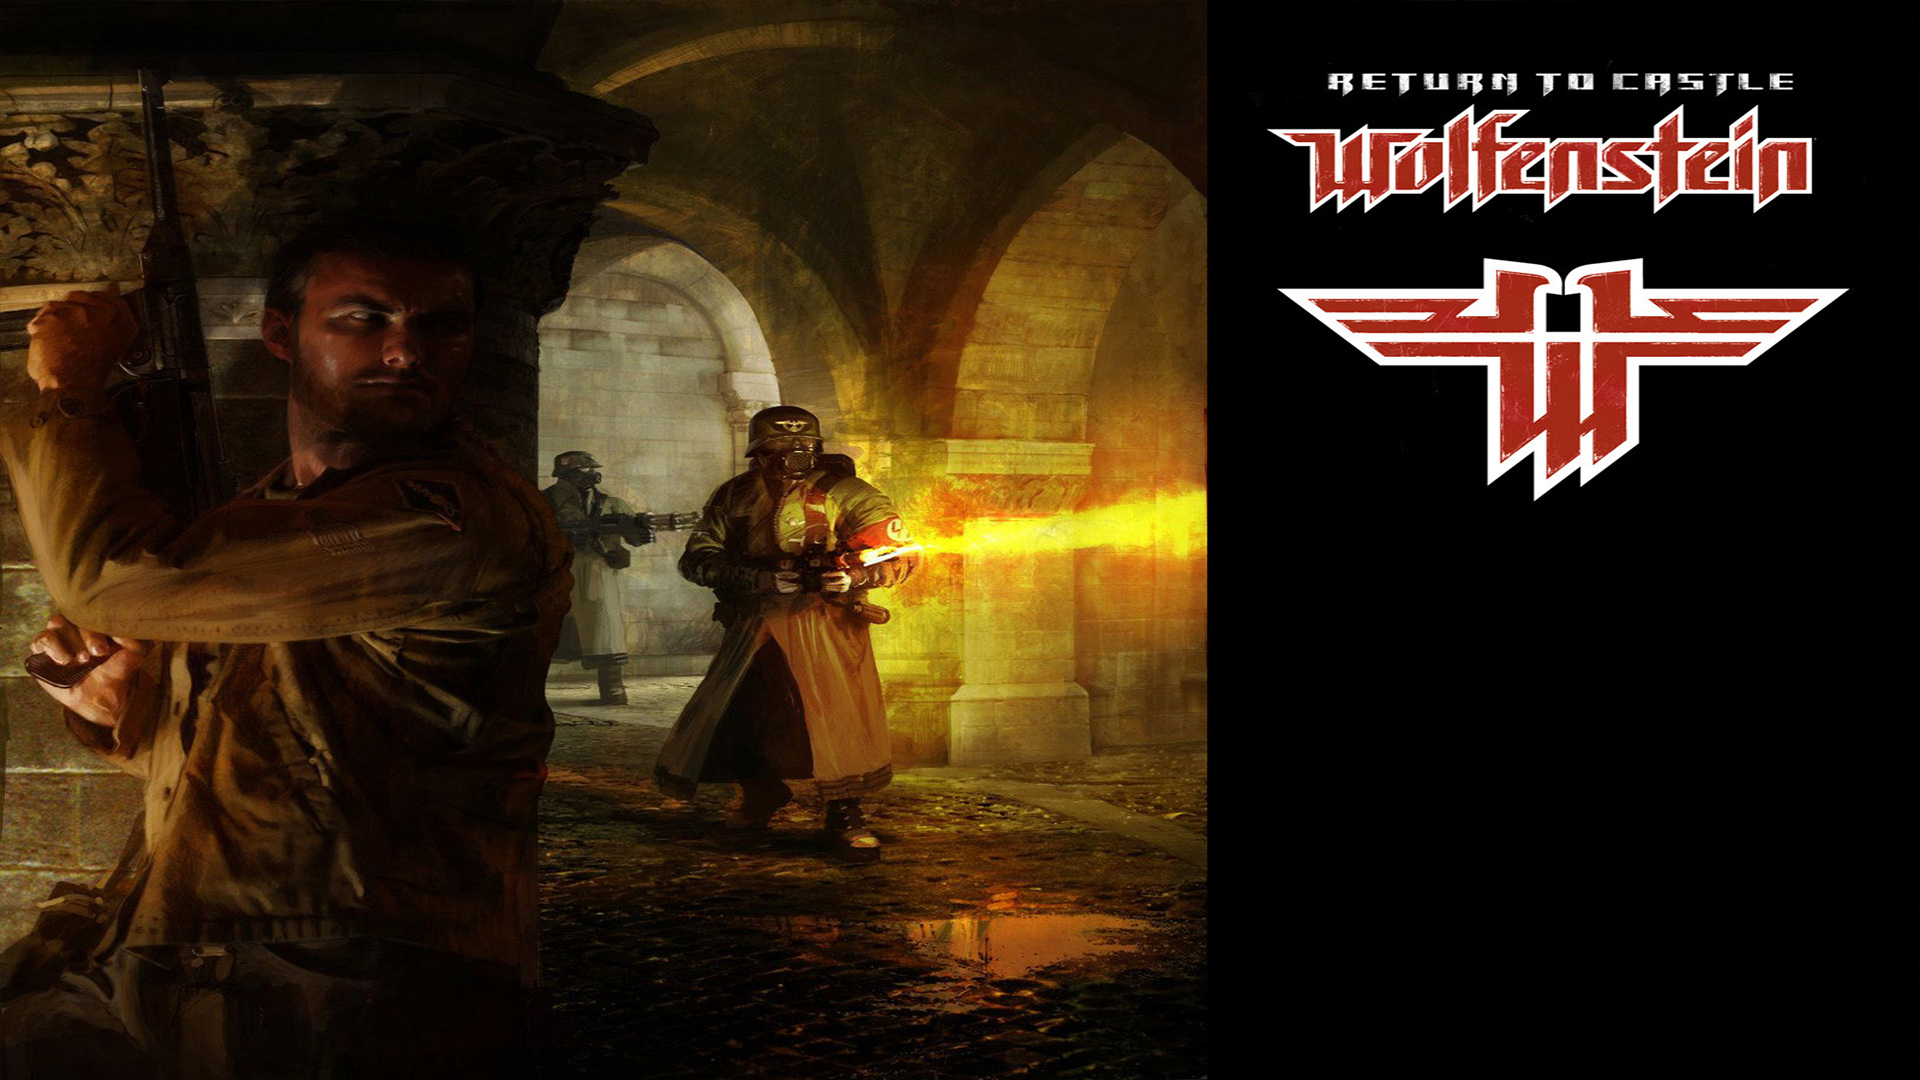 League Of Legends Wallpapers Hd 1080p 2 Return To Castle Wolfenstein Hd Wallpapers Background